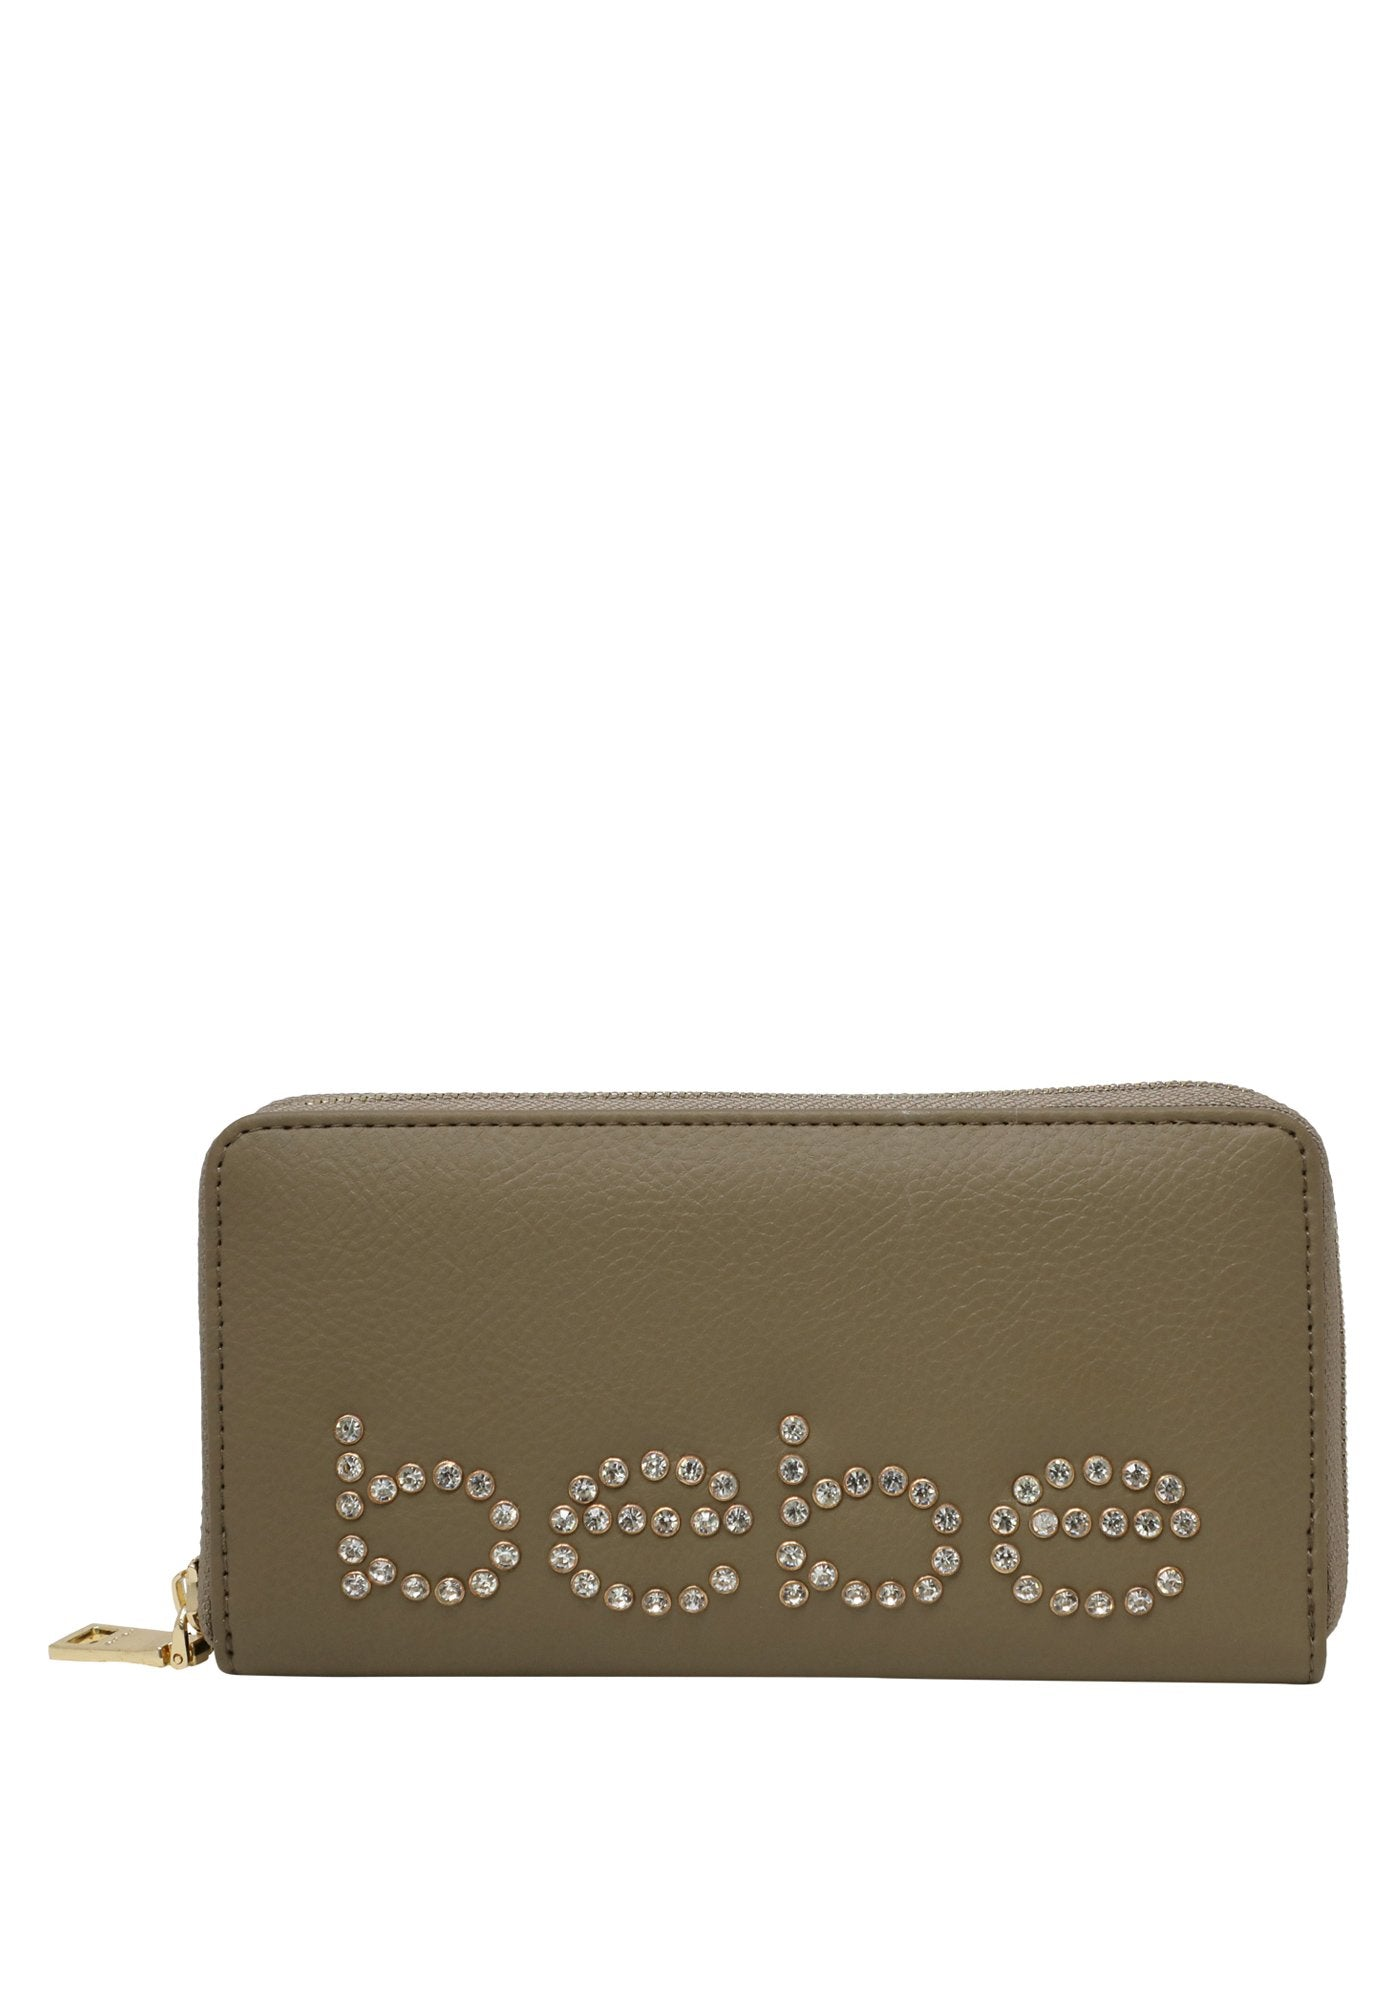 Bebe Women's Jetta Zip Around Wallet, Size OS in Taupe Polyurethane